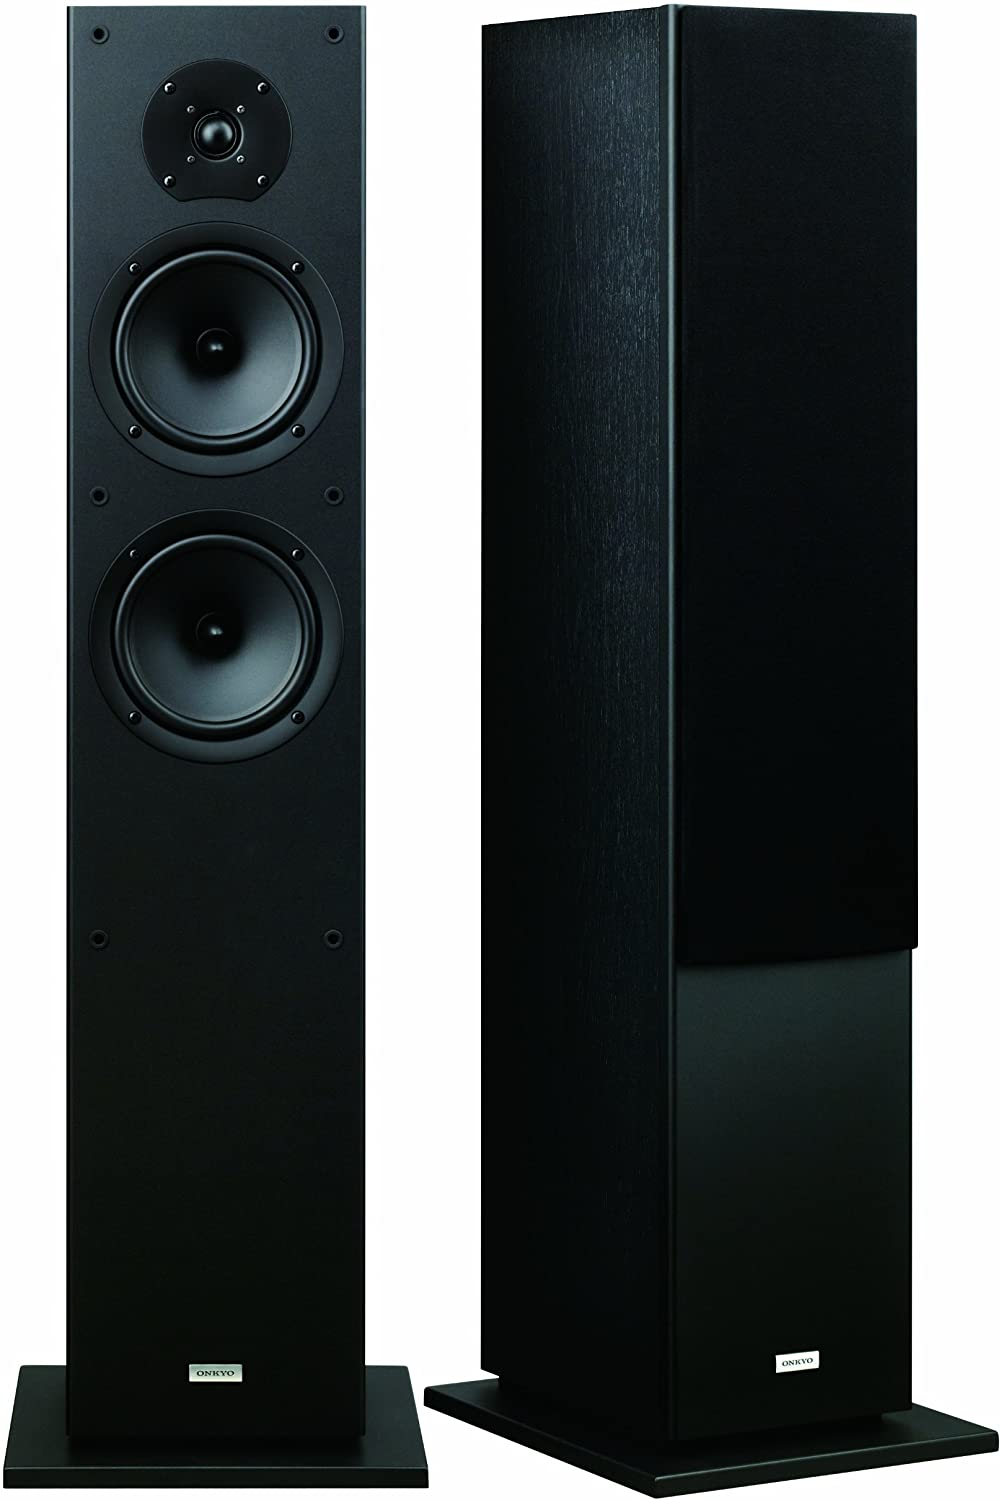 Onkyo's Tower Speaker (SKF-4800) - Tower Speakers